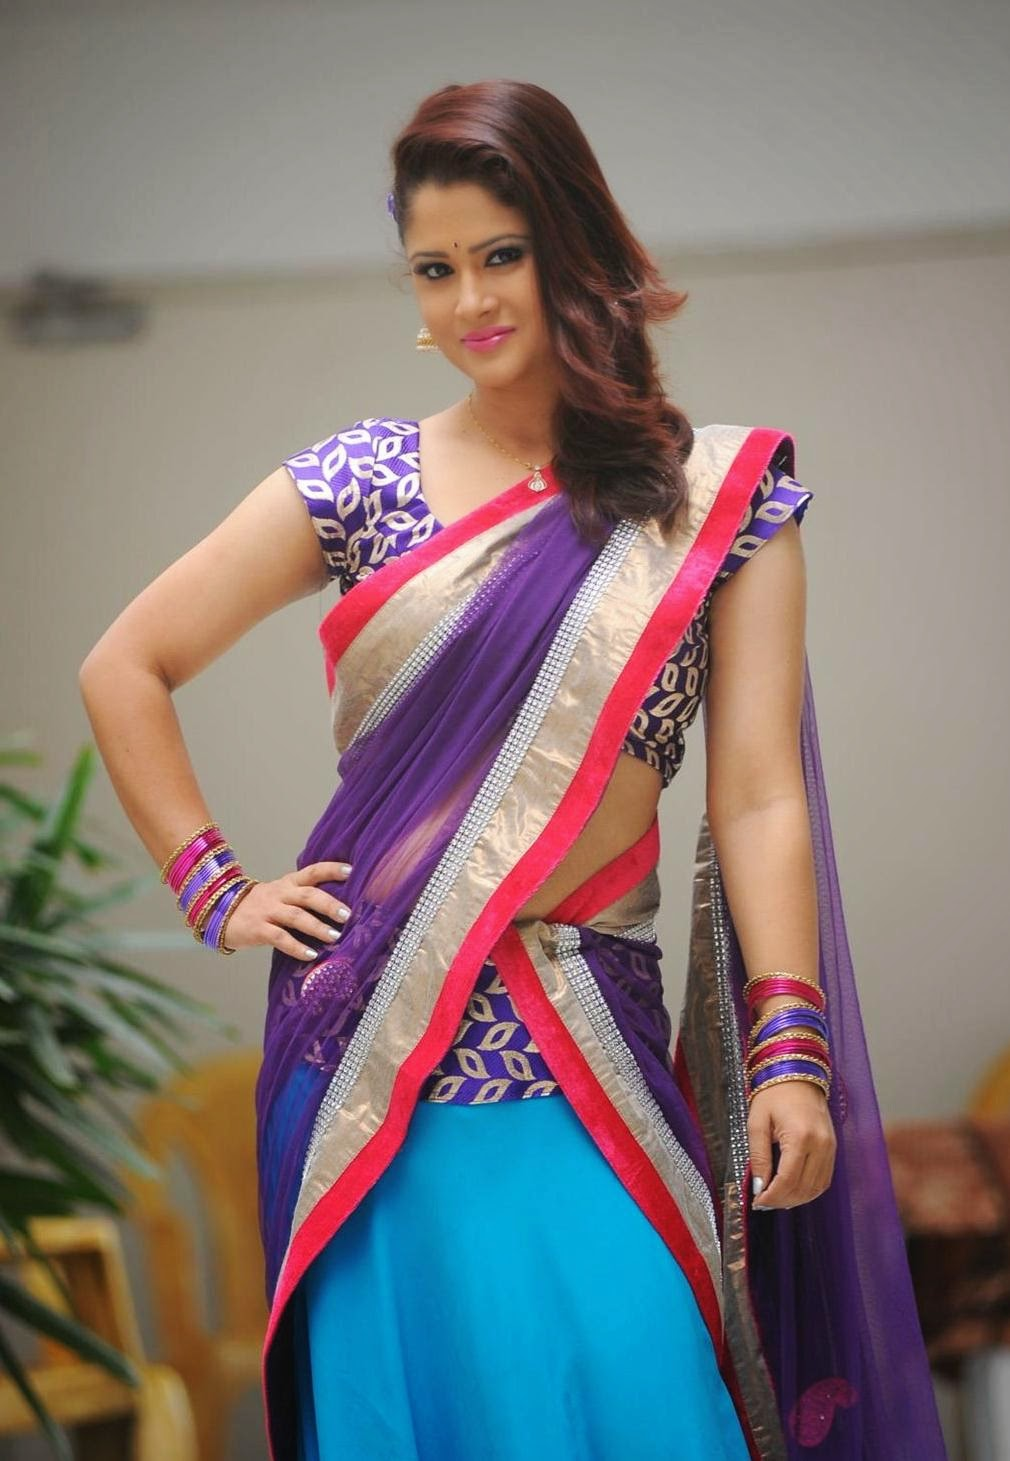 Anchor Shilpa Chakravarth Hot Photos In Half saree,Half Sari photo Stills, S, Shilpa Chakravarth, Shilpa Chakravarth Hot Images, Tv Anchor, HD Actress Gallery, latest Actress HD Photo Gallery, Latest actress Stills, Telugu Movie Actress, Tollywood Actress,